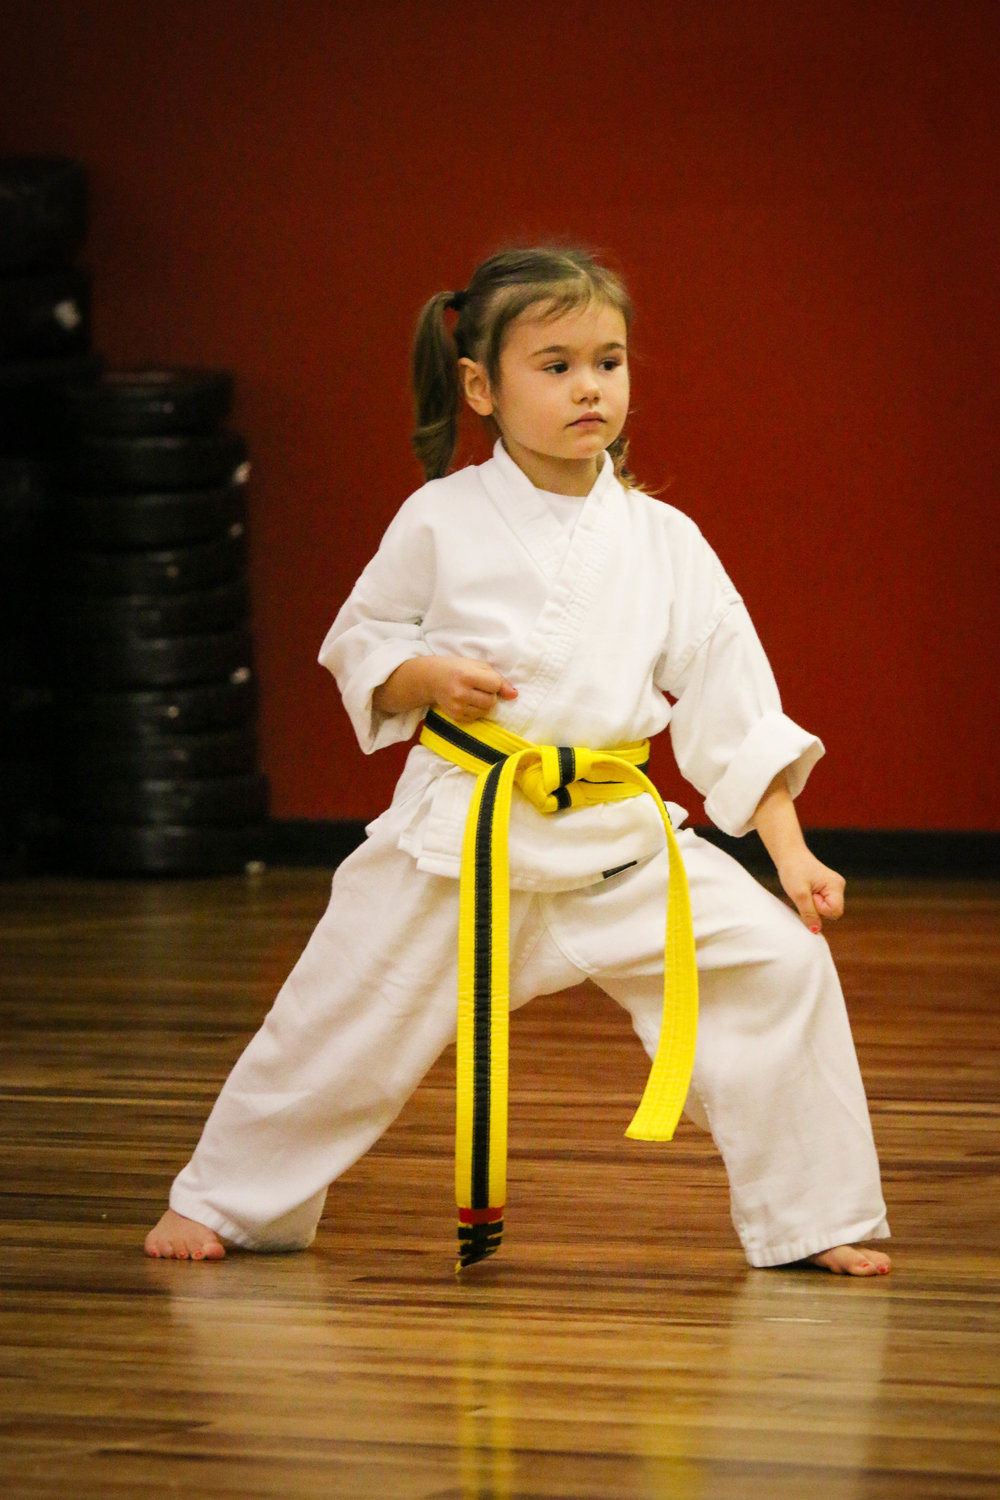 Karate girl lost in thought.jpg